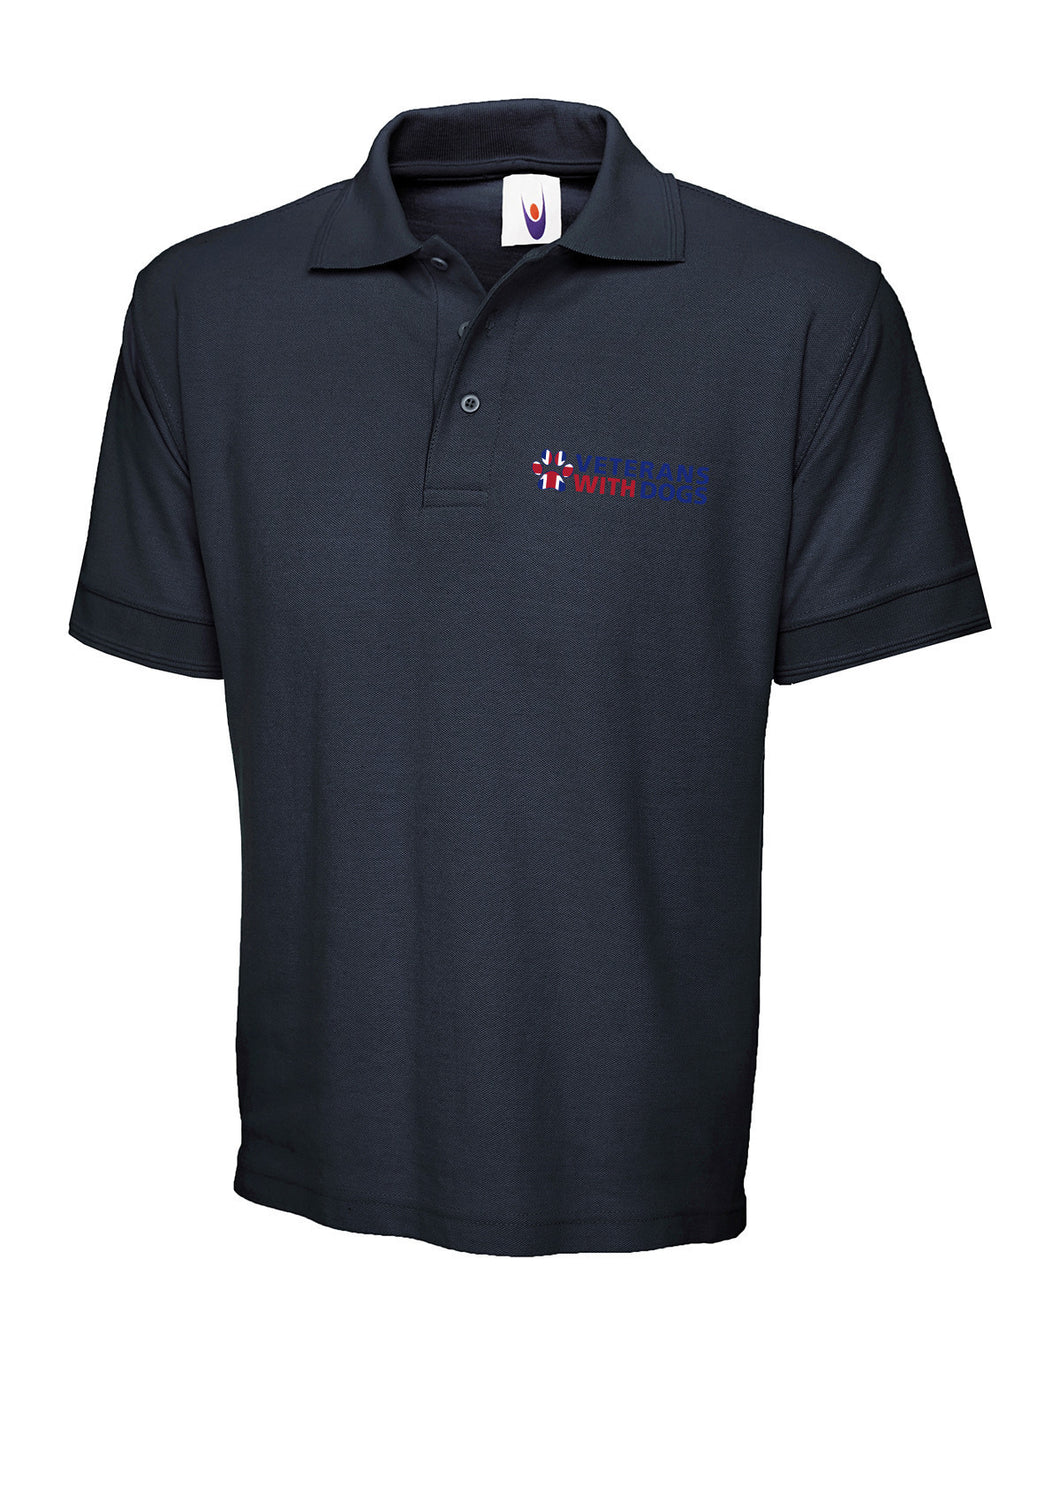 Polo Shirt - Veterans With Dogs (VWD) Shop